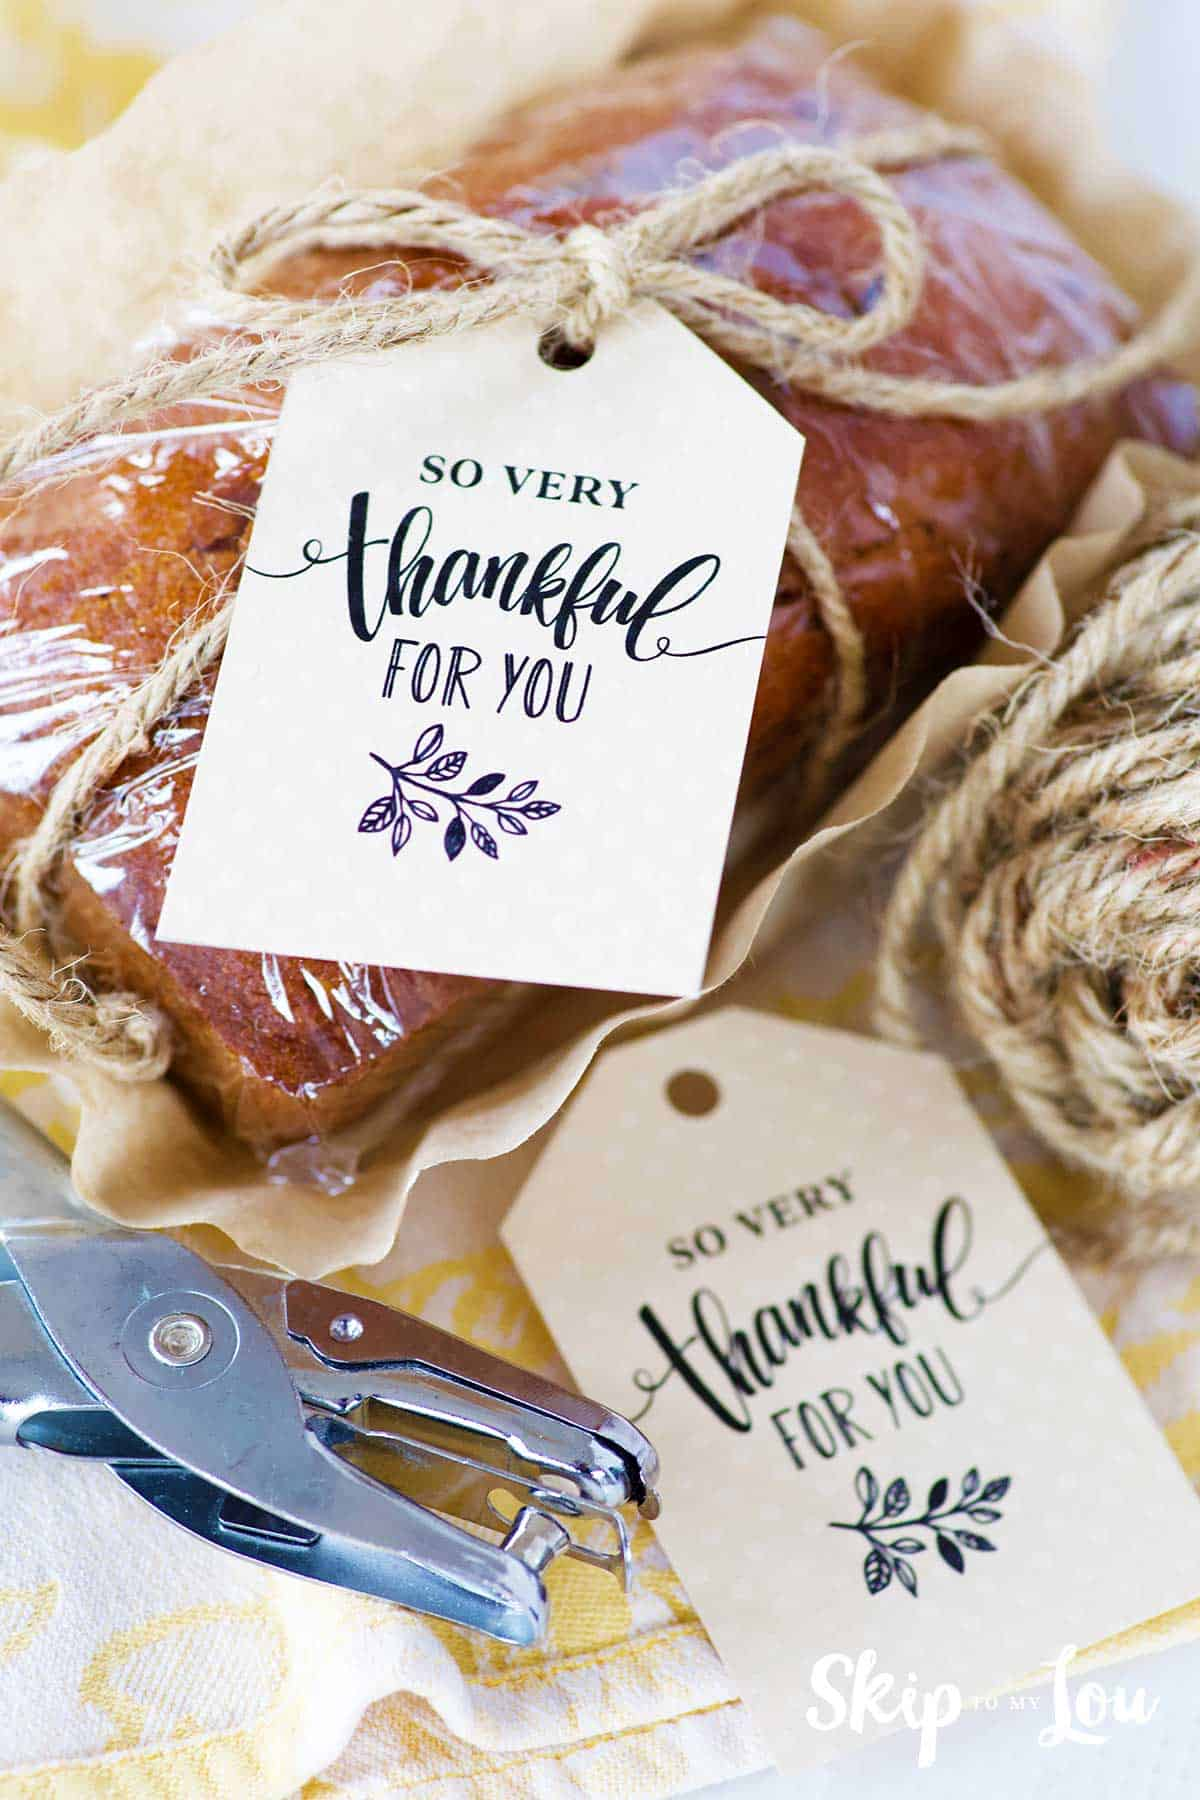 wrapped bread with tag hole punch twine